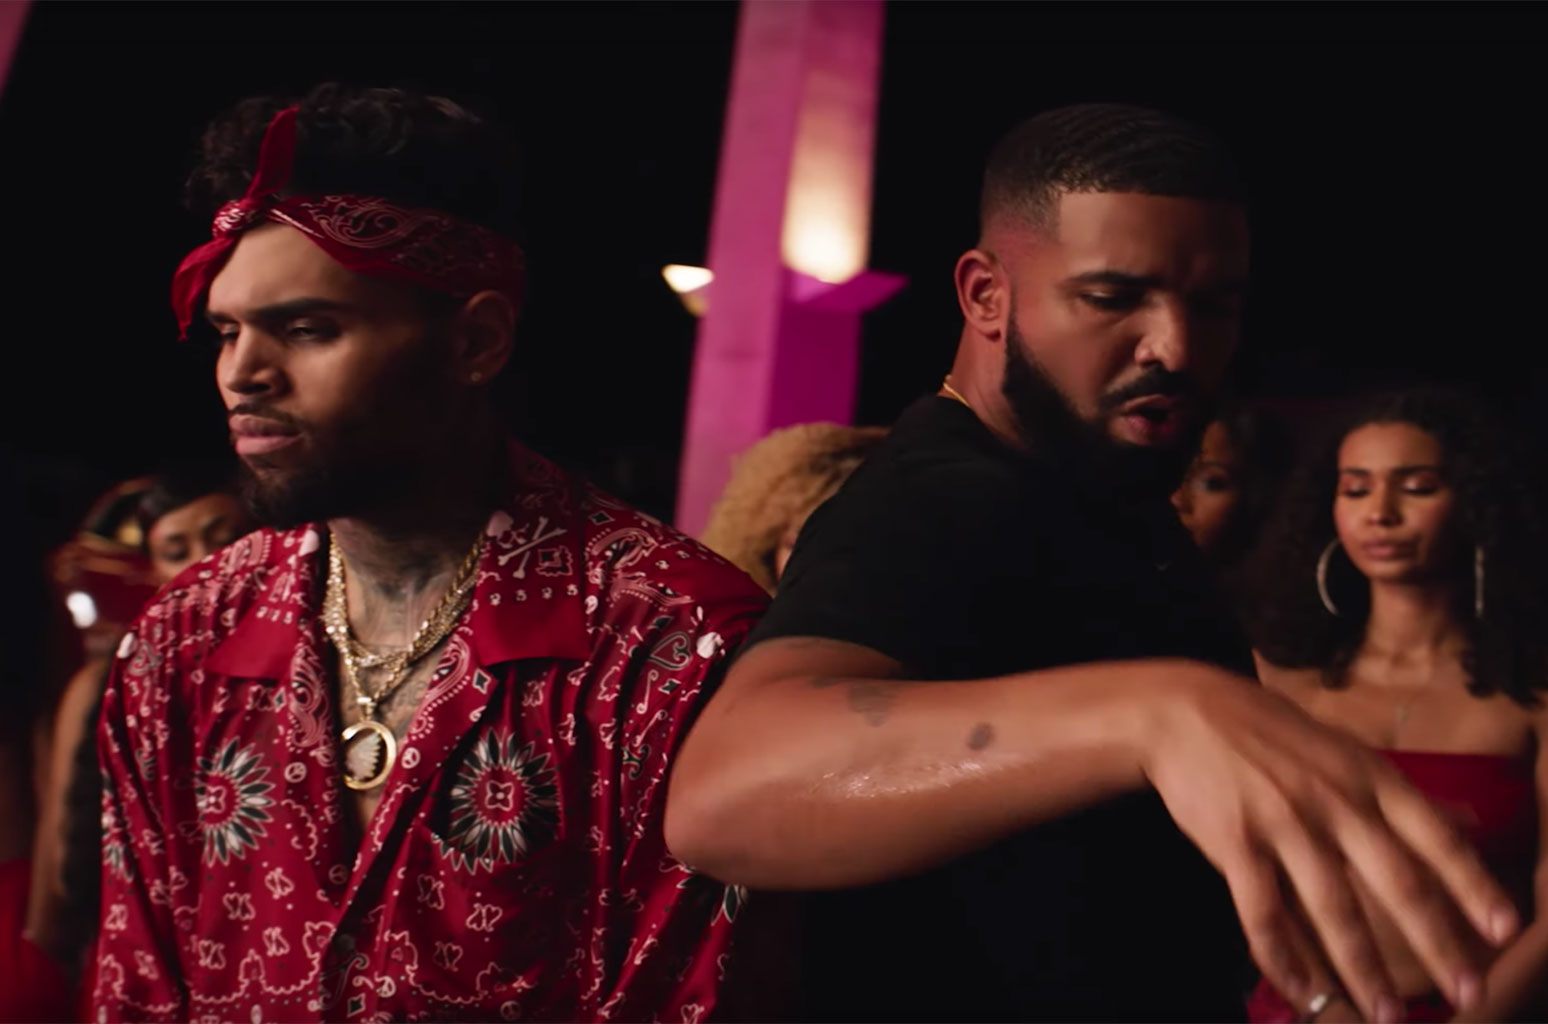 photos/chris-brown-drake-Chris-Brown-No-Guidance-2019-billboard-1548.jpg